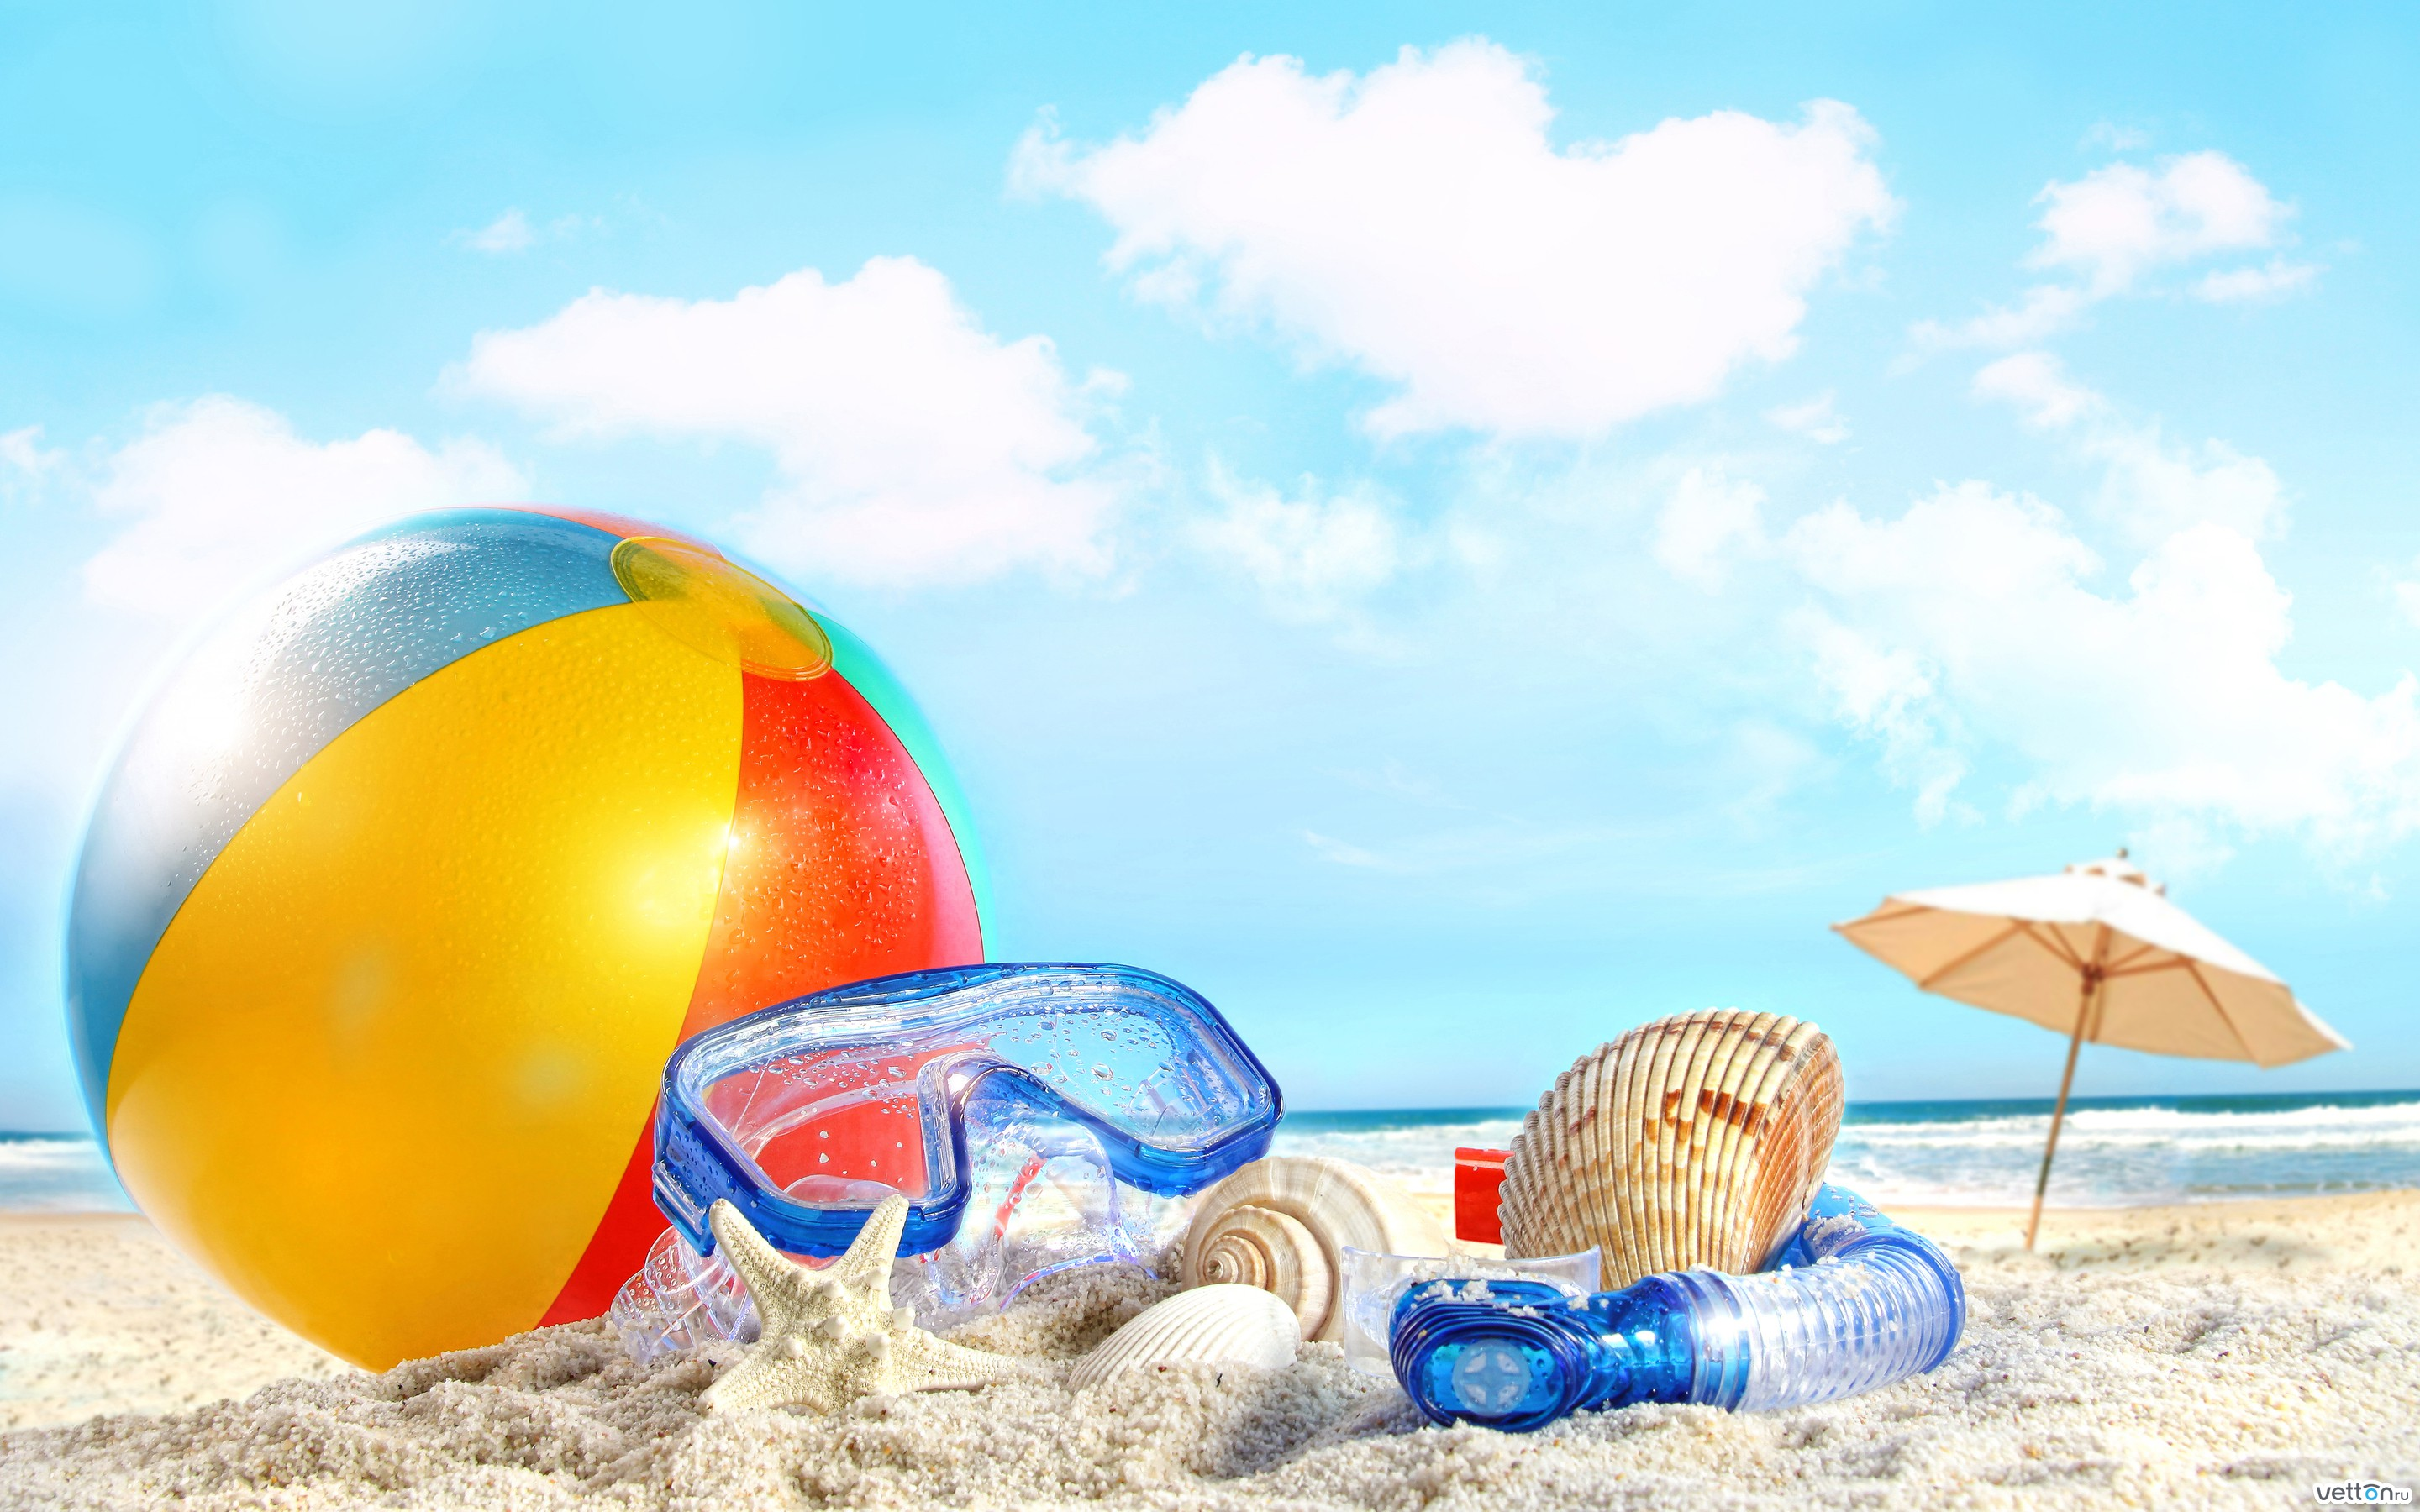 sky, beach, ball, shells, sand